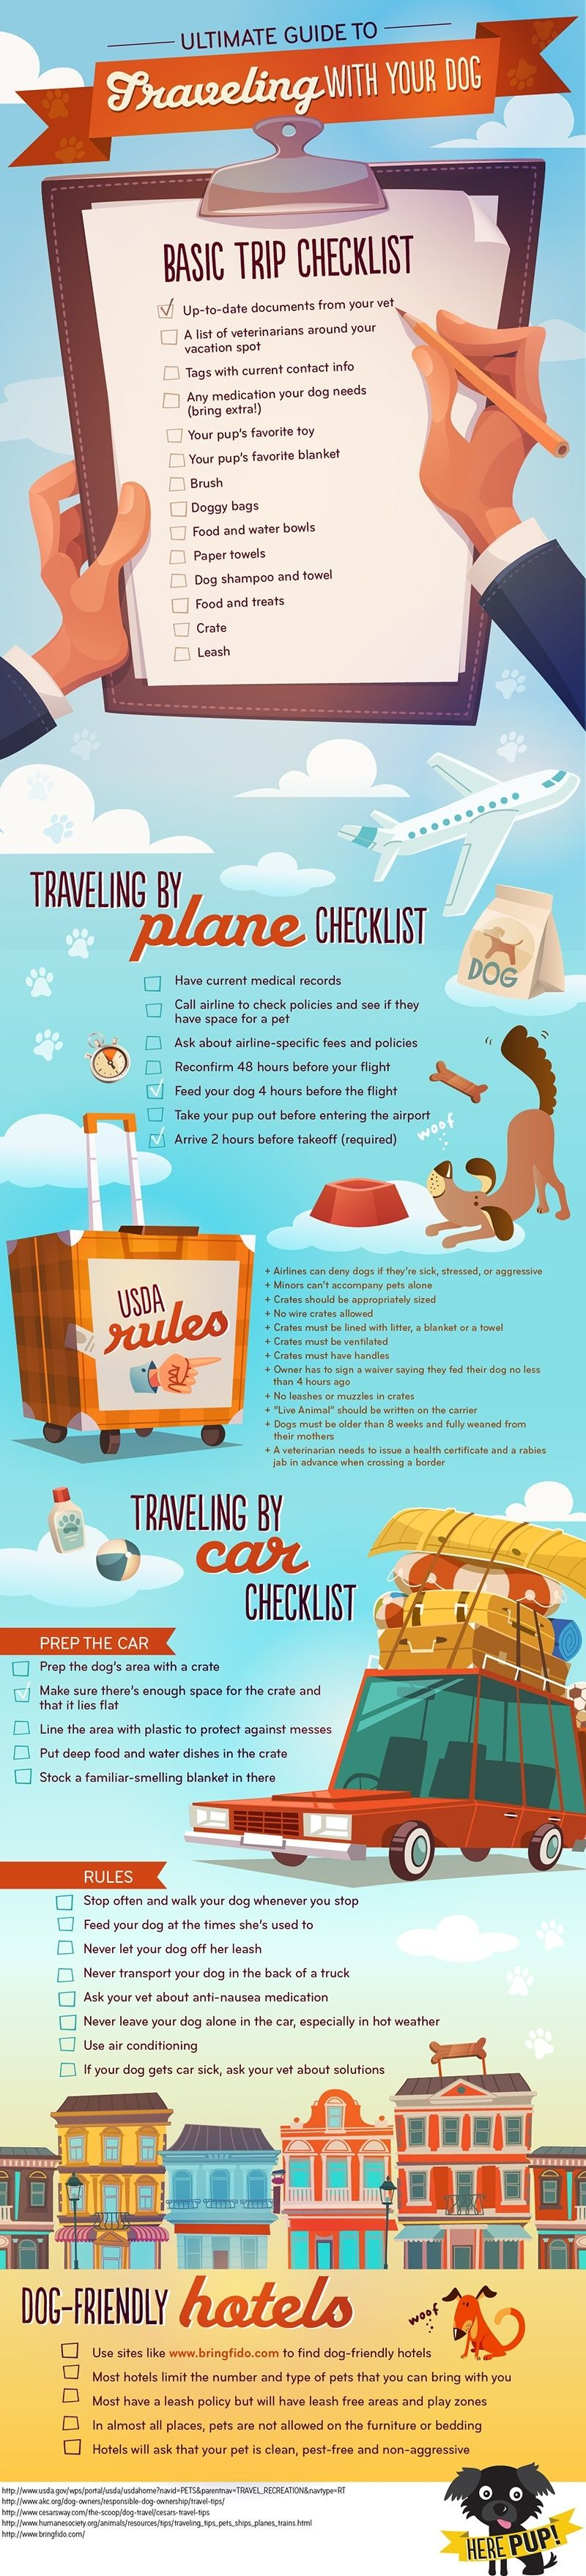 How to Travel With Your Dog (Infographic by HerePub)